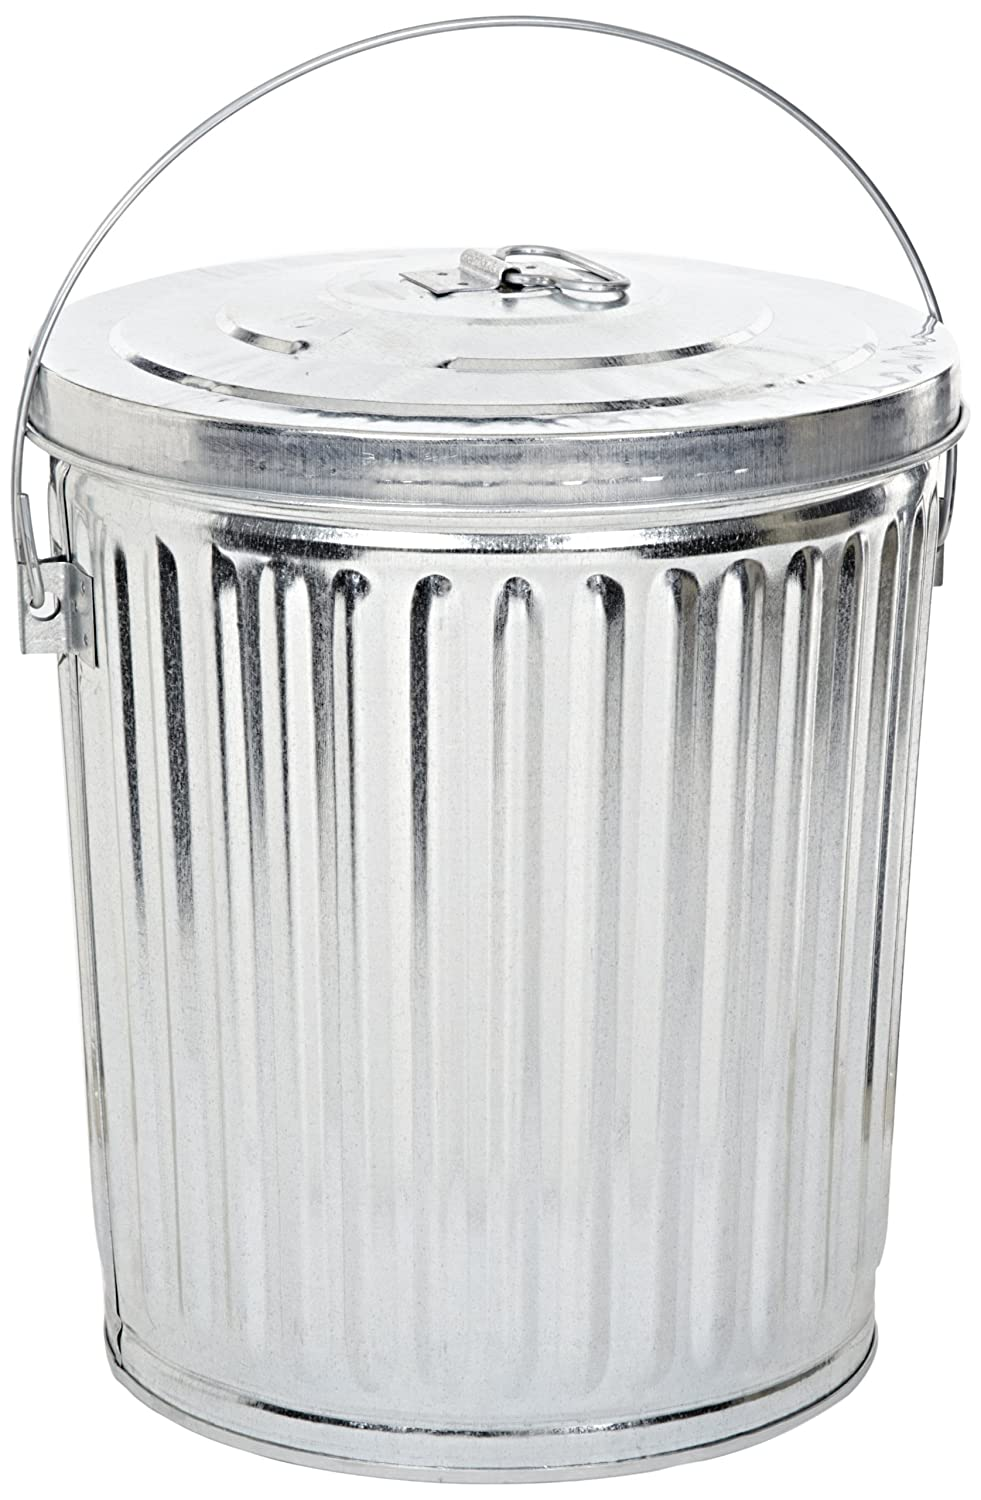 Aluminium Garbage Cans : Galvanized steel gallon light duty trash garbage can